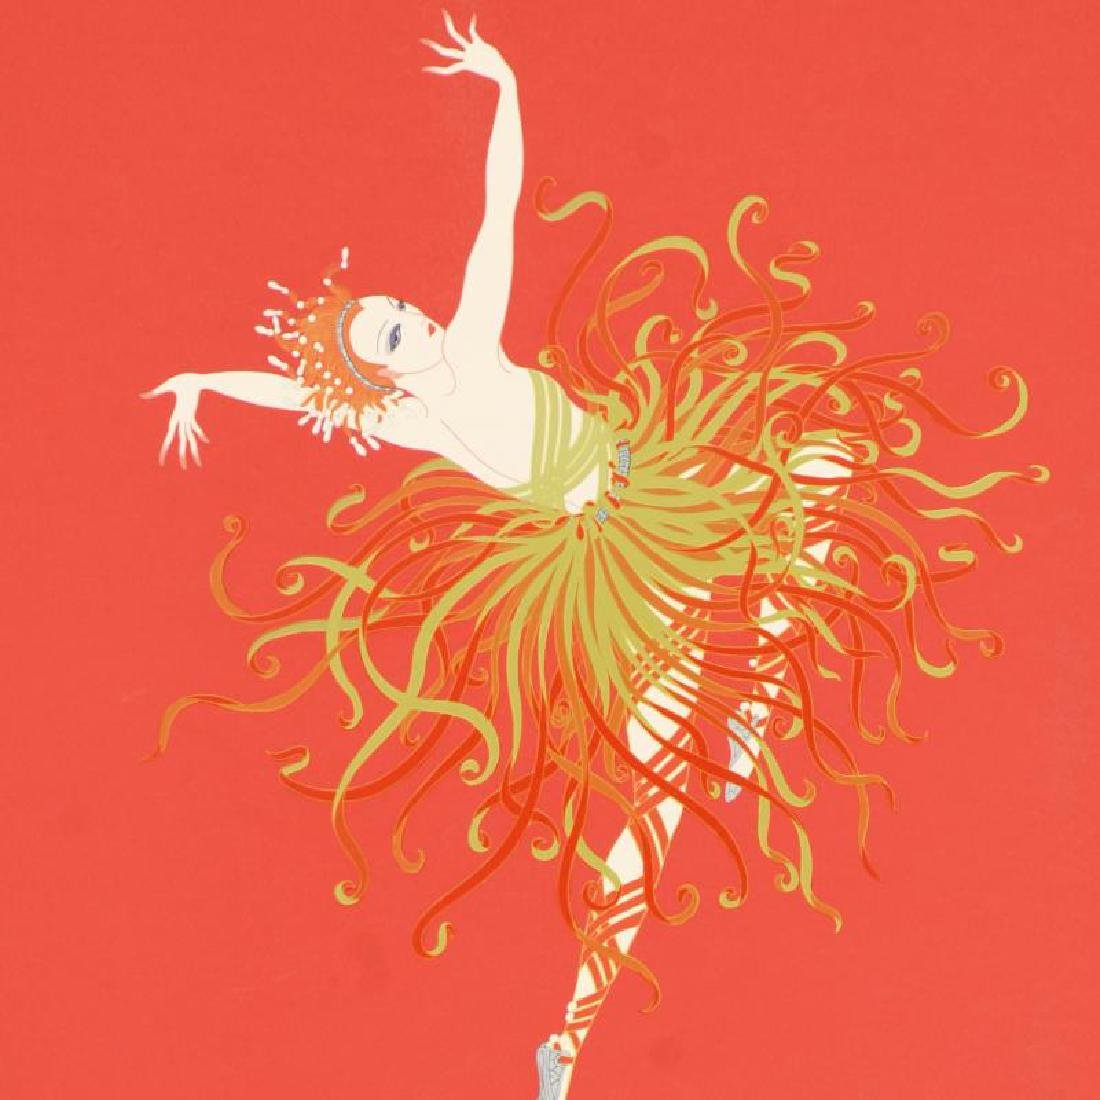 Applause by Erte (1892-1990) - 2